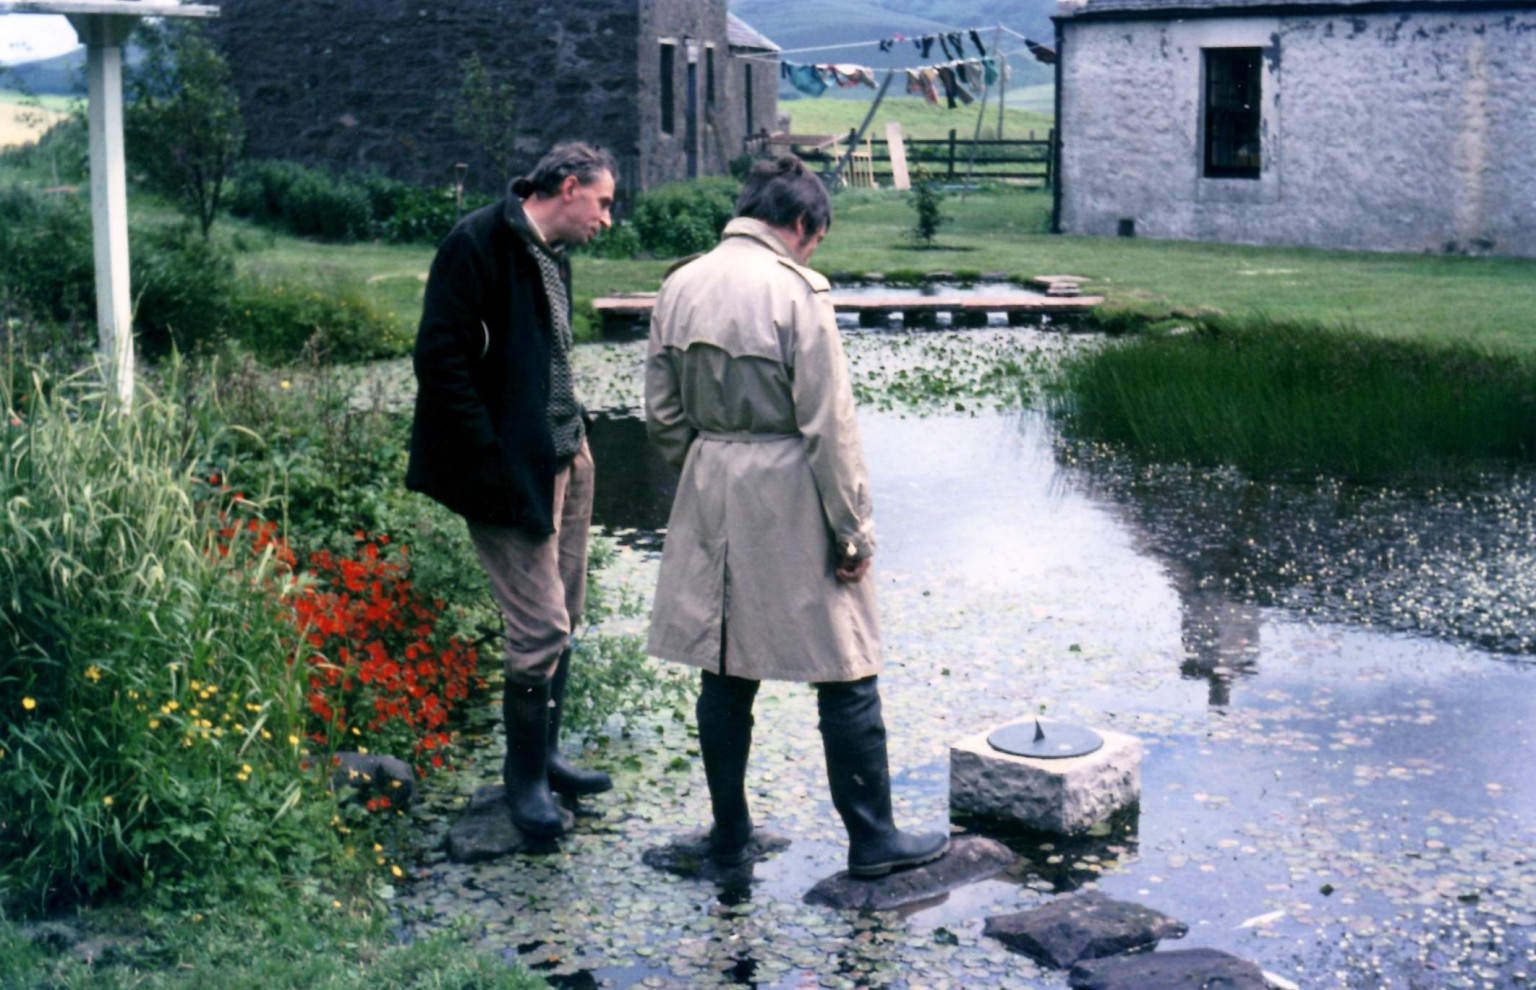 Ian Hamilton Finlay and Stephen Bann discussing the sundial, 'Tristram's Sail', installed in the House Pond at Stonypath, July 1972